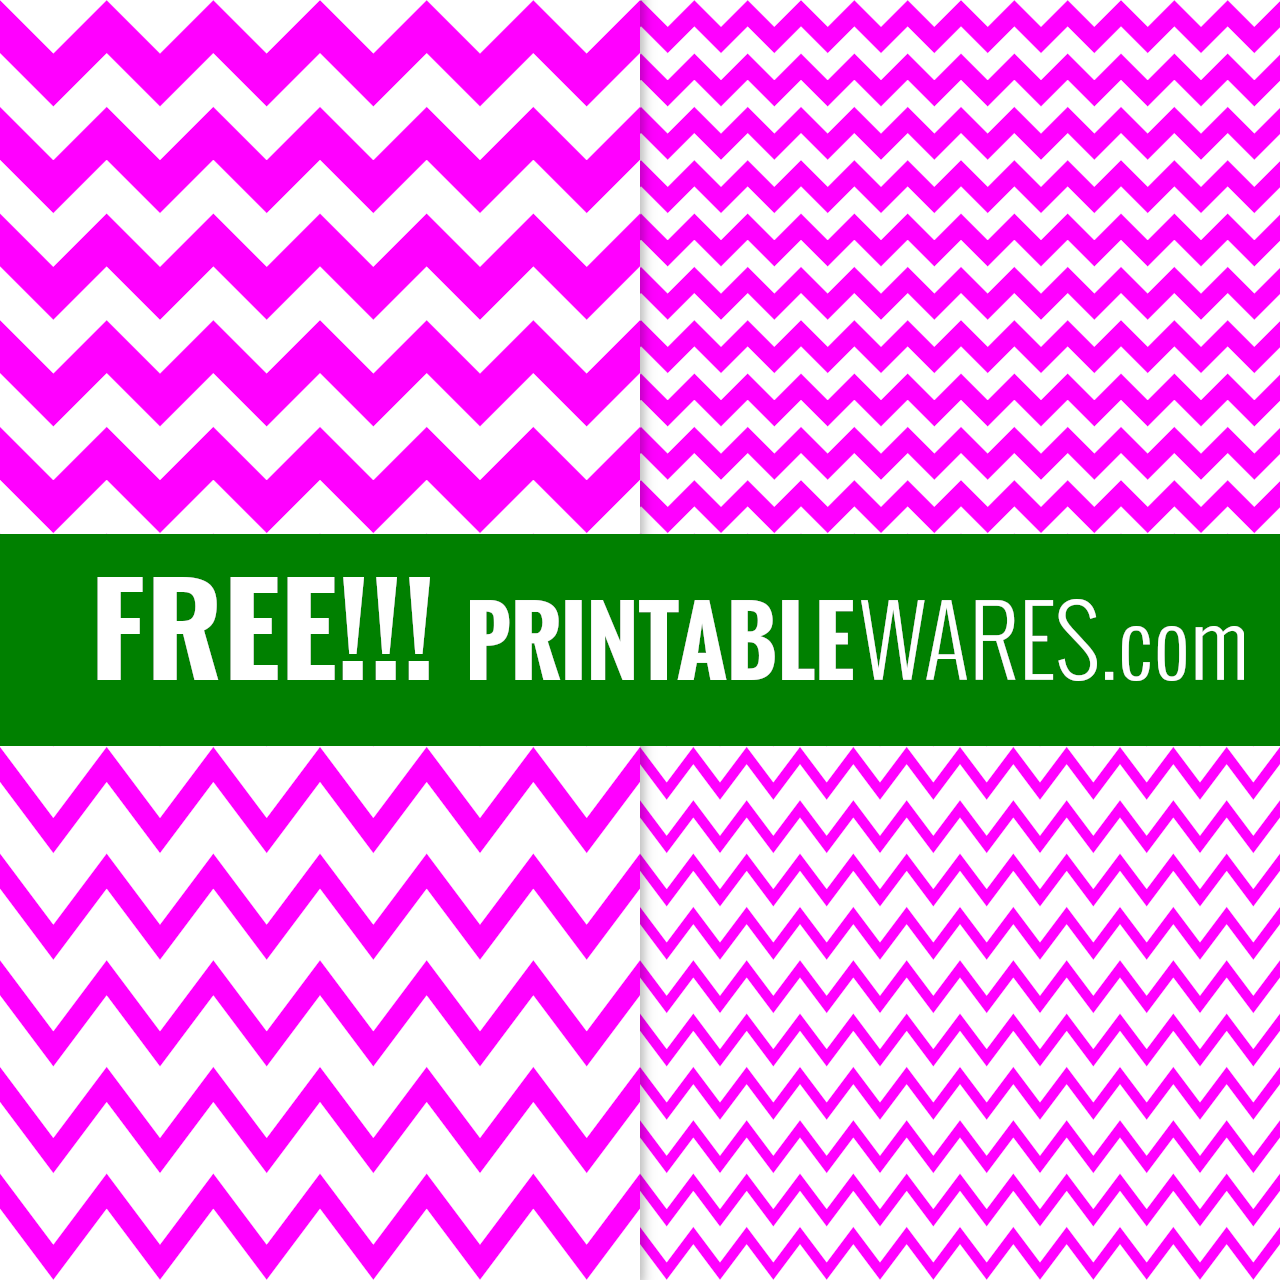 Free Printable Scrapbook Papers in Hot Pink